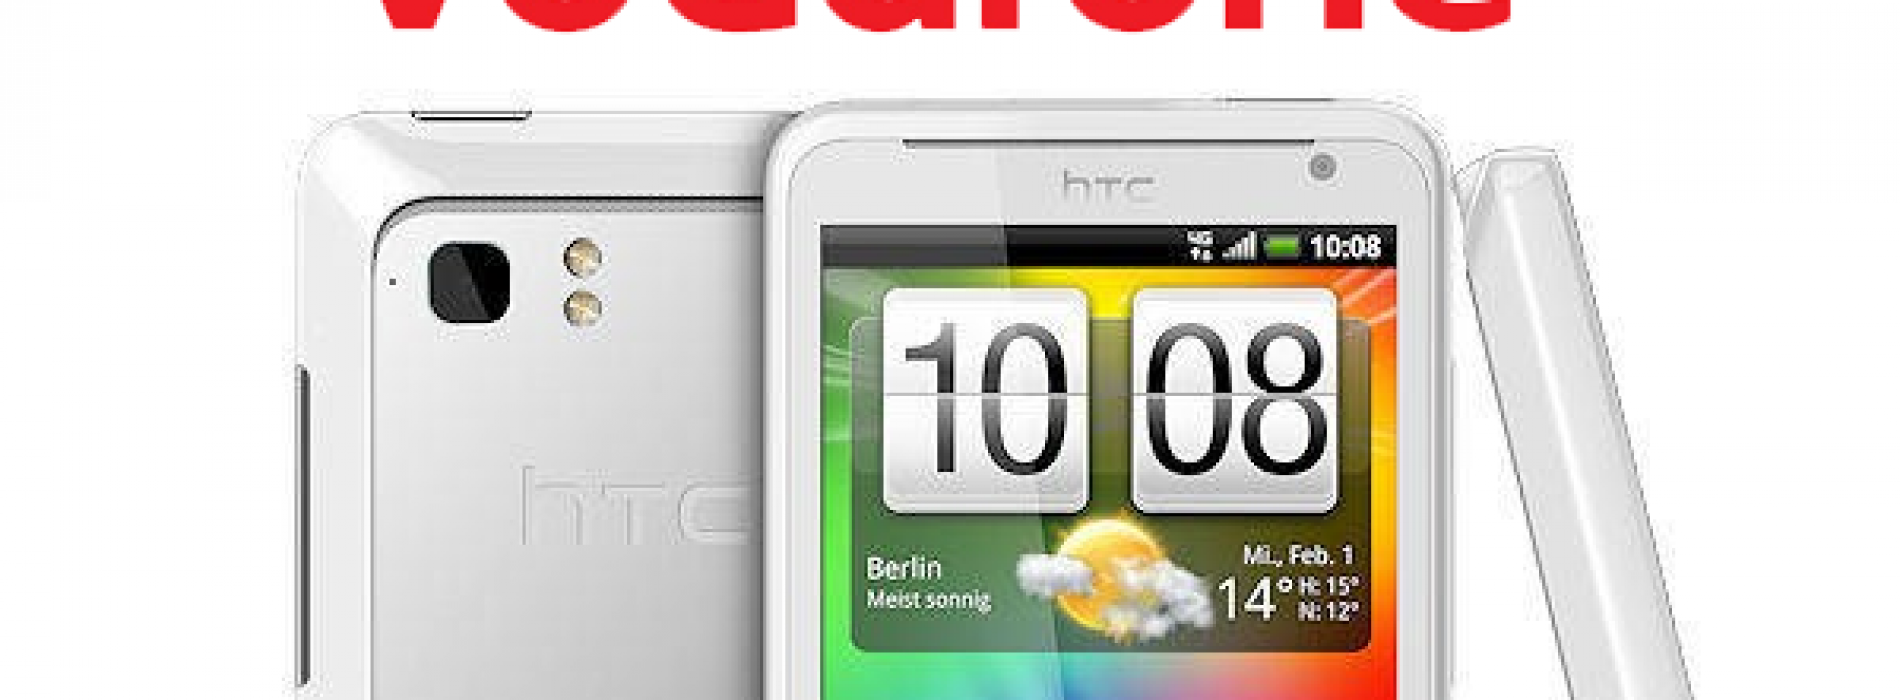 HTC Velocity bringing 4G LTE speeds to Vodafone Germany